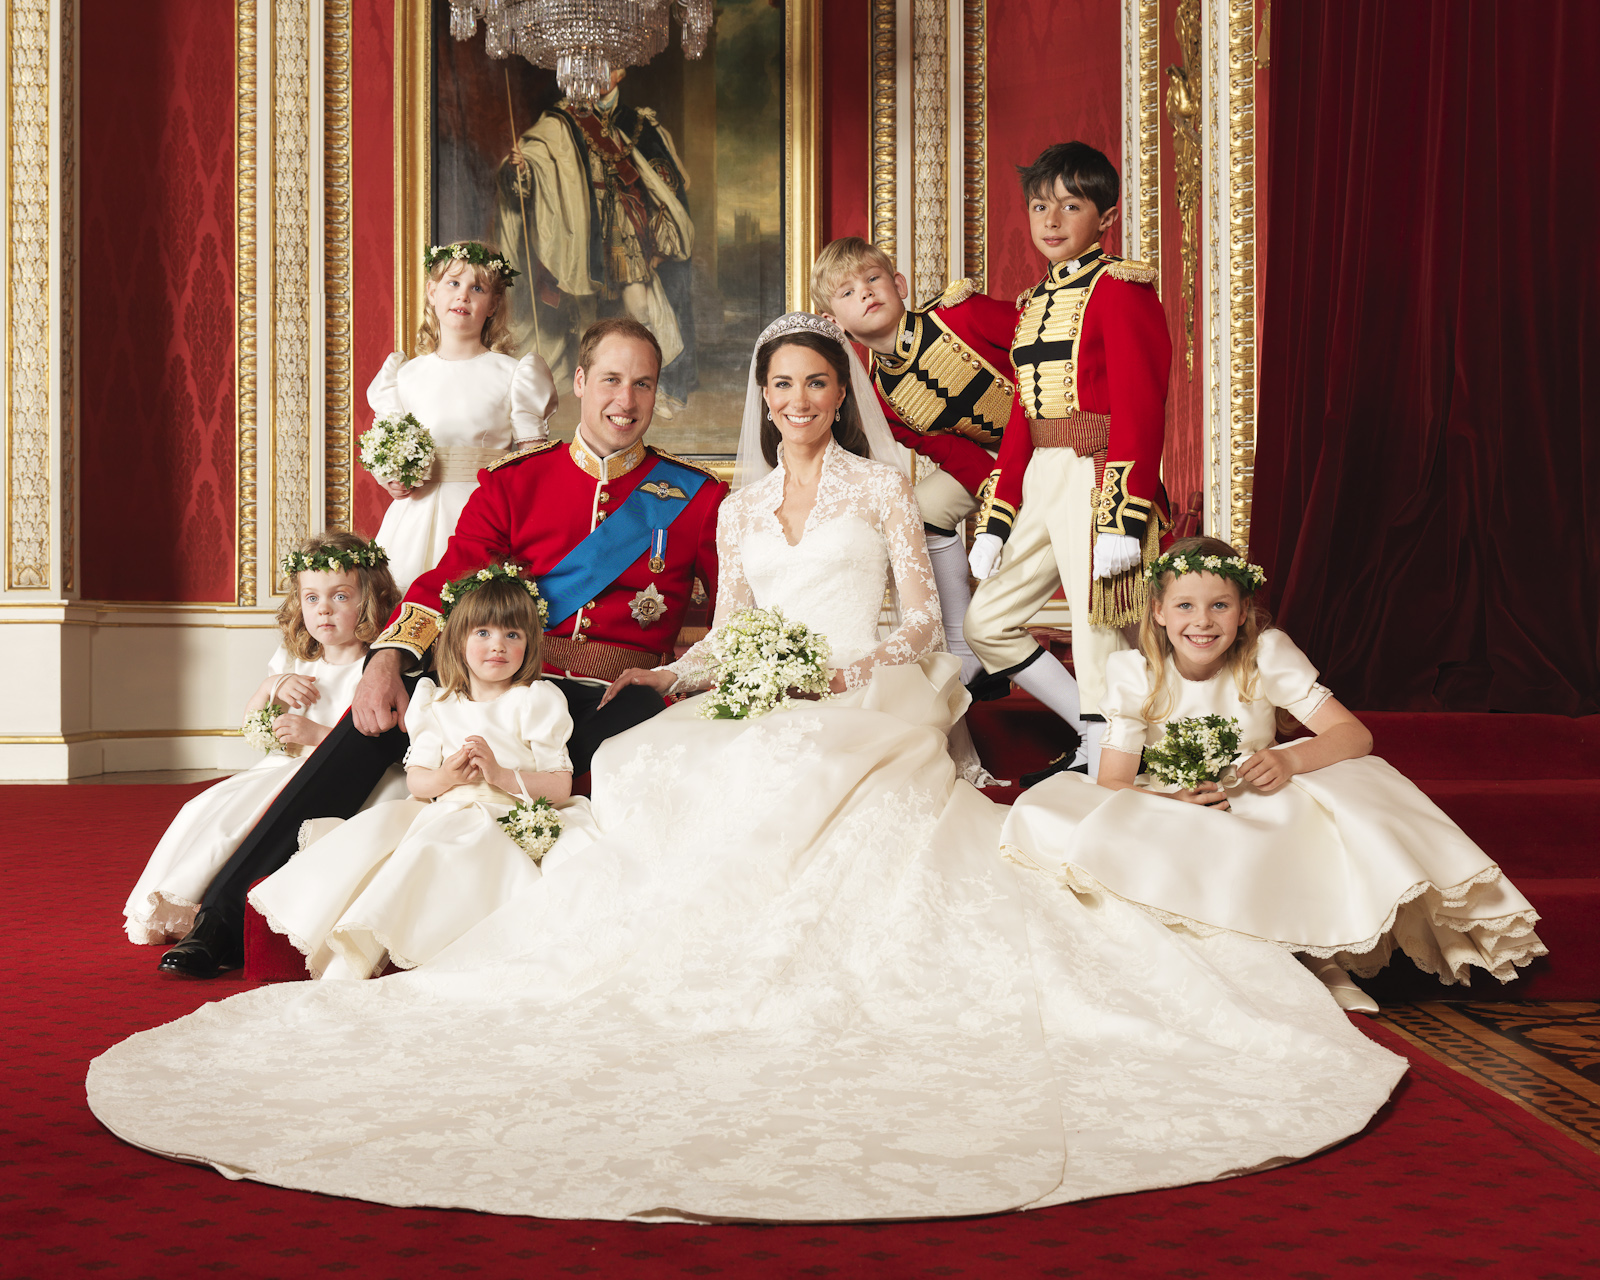 royalwedding3 - Royal Family Wedding